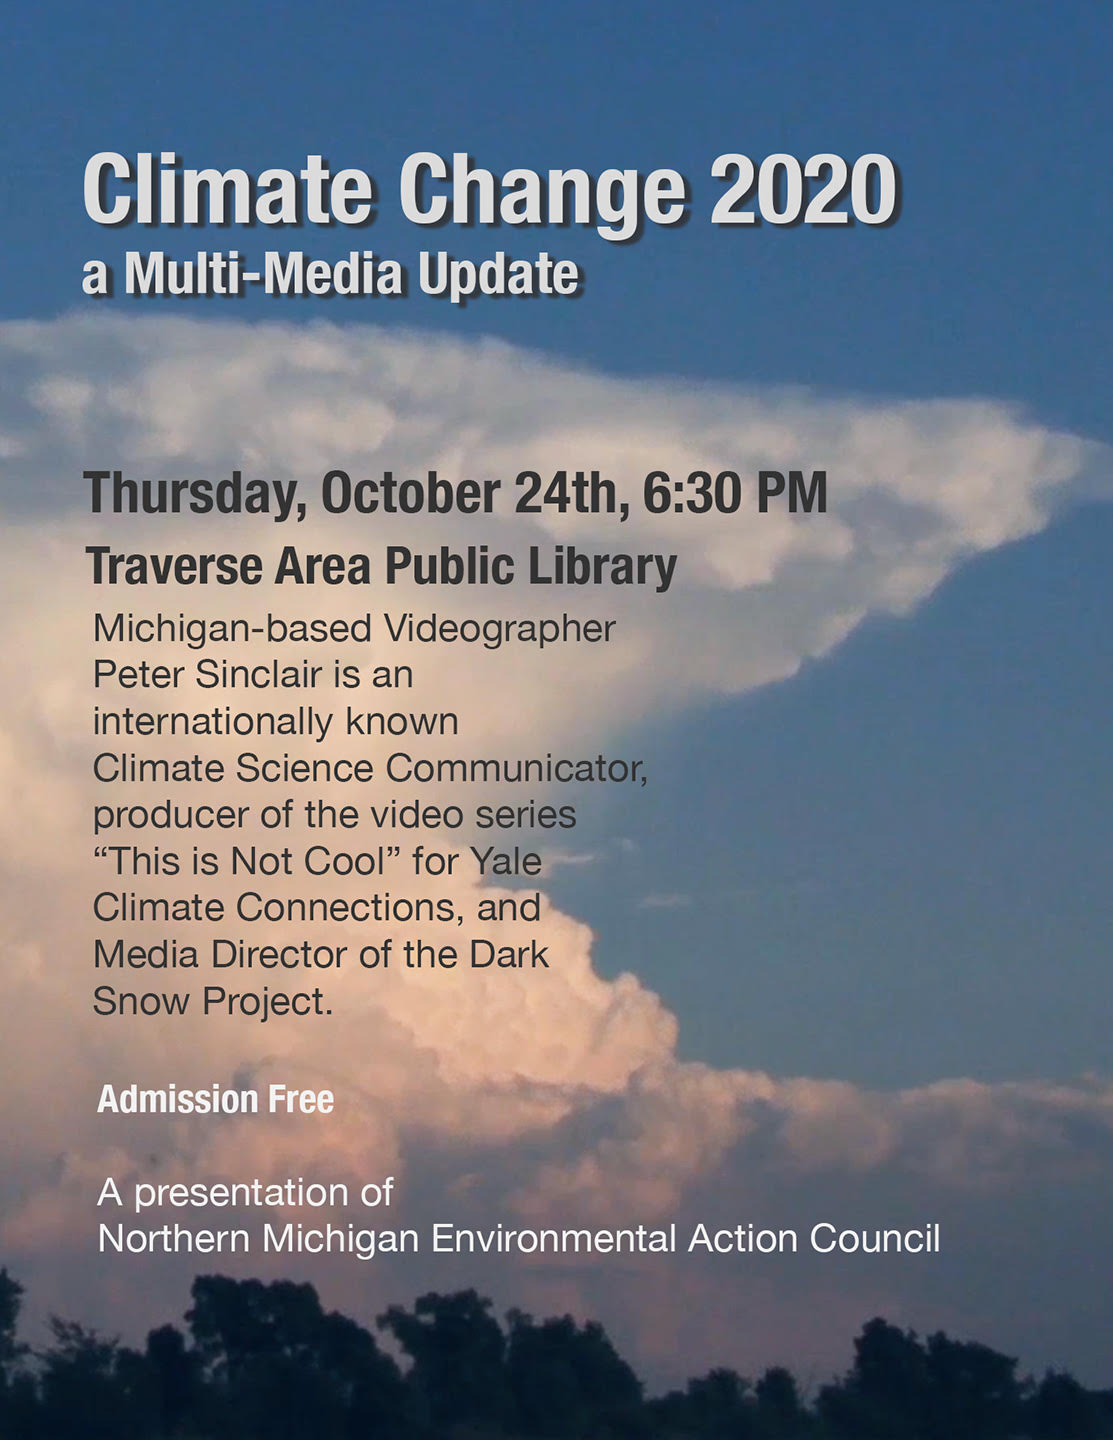 Climate Change 2020 Flyer